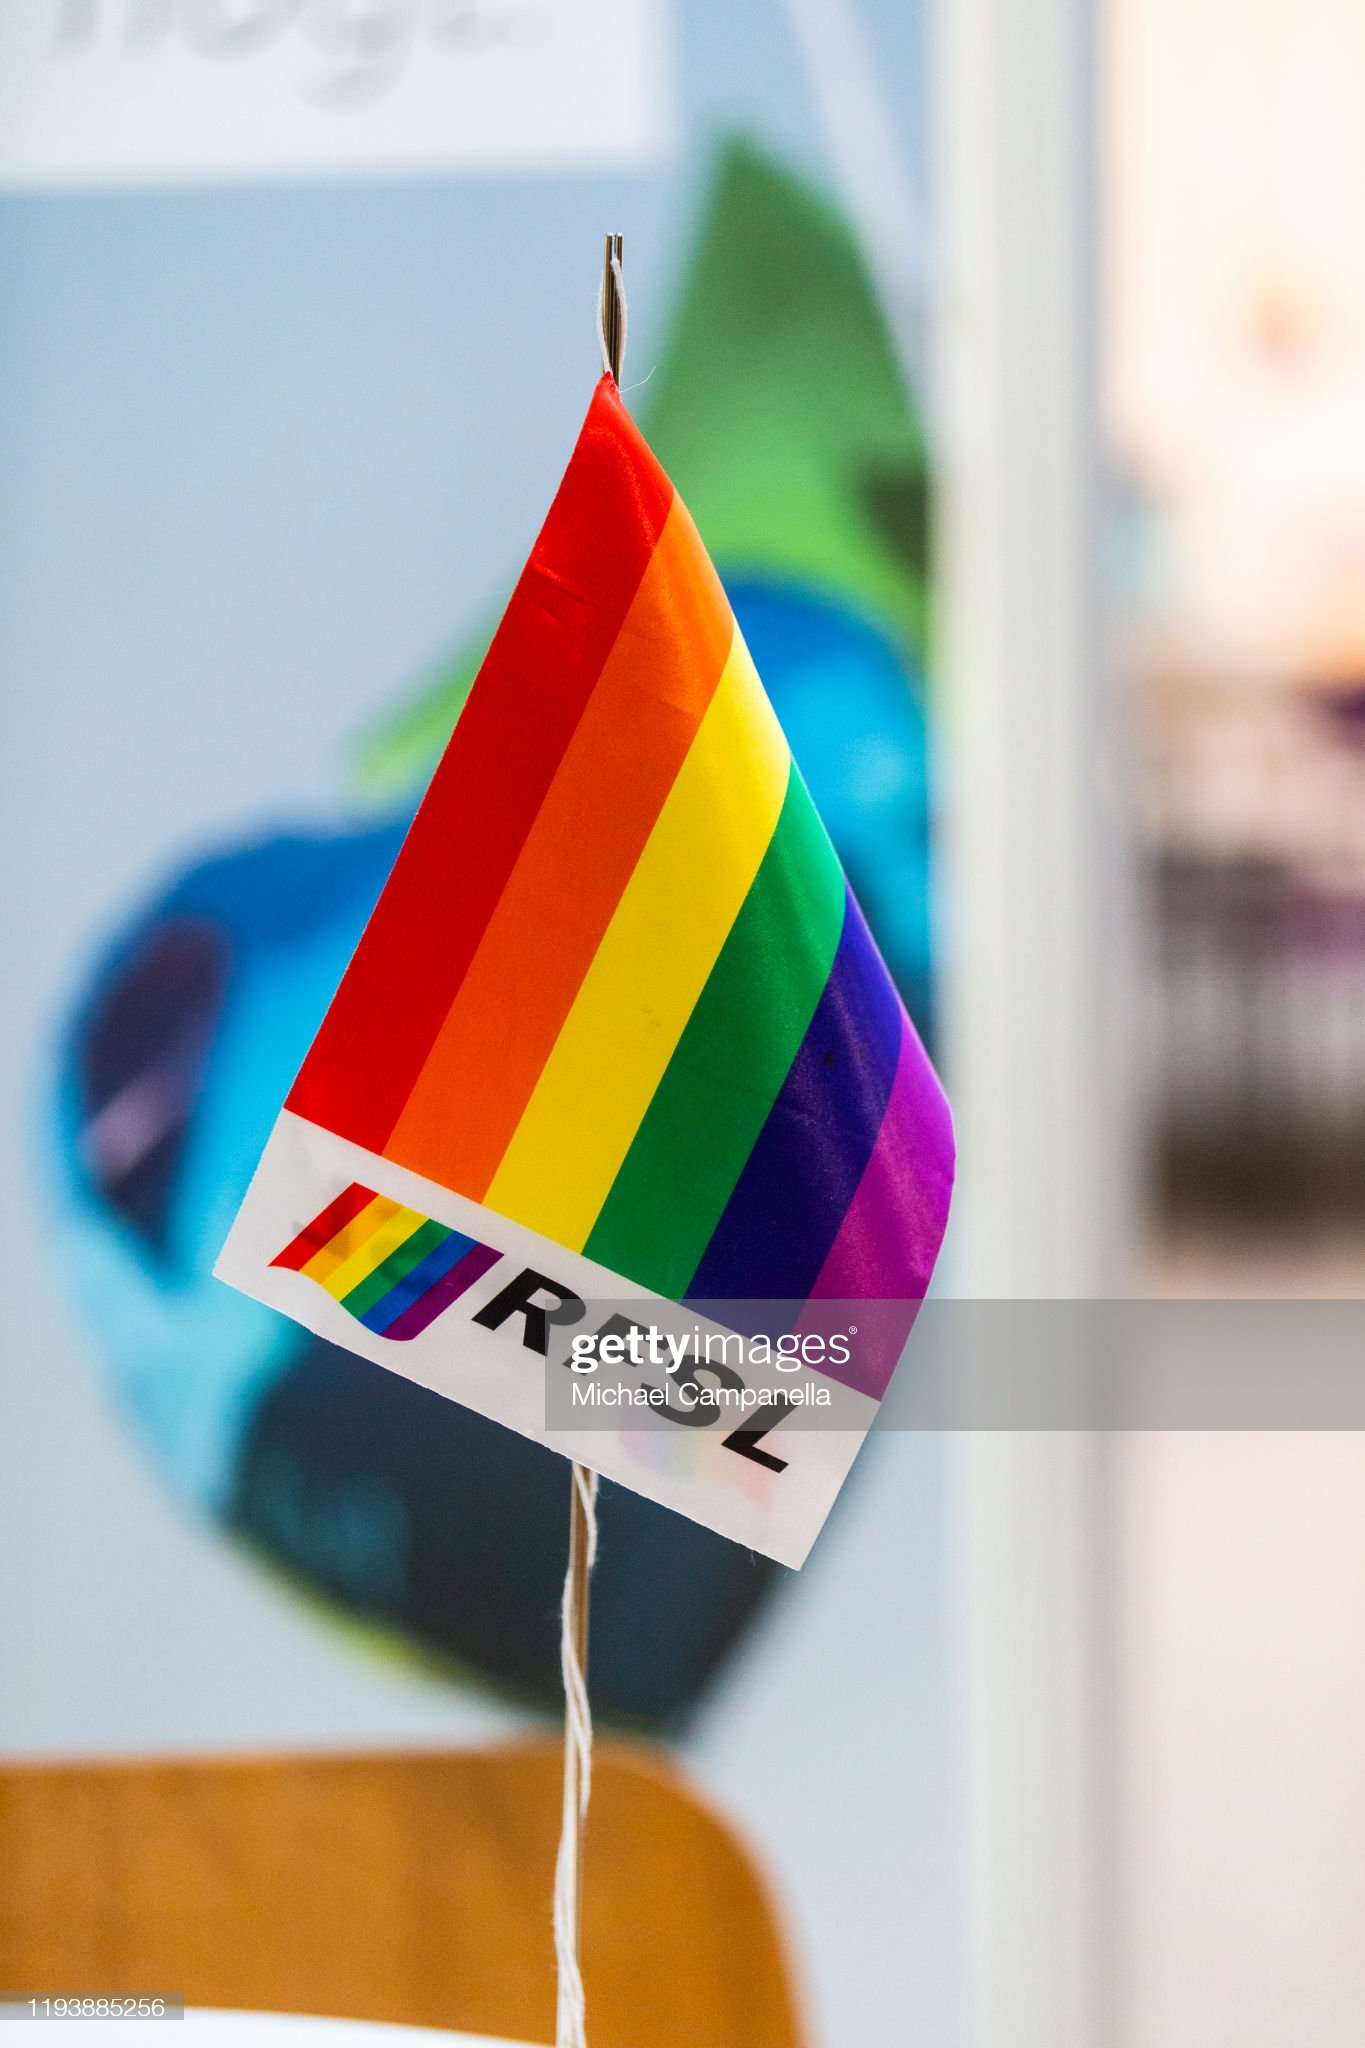 logo-for-swedish-federation-for-lesbian-gay-bisexual-transgender-and-picture-id1193885256